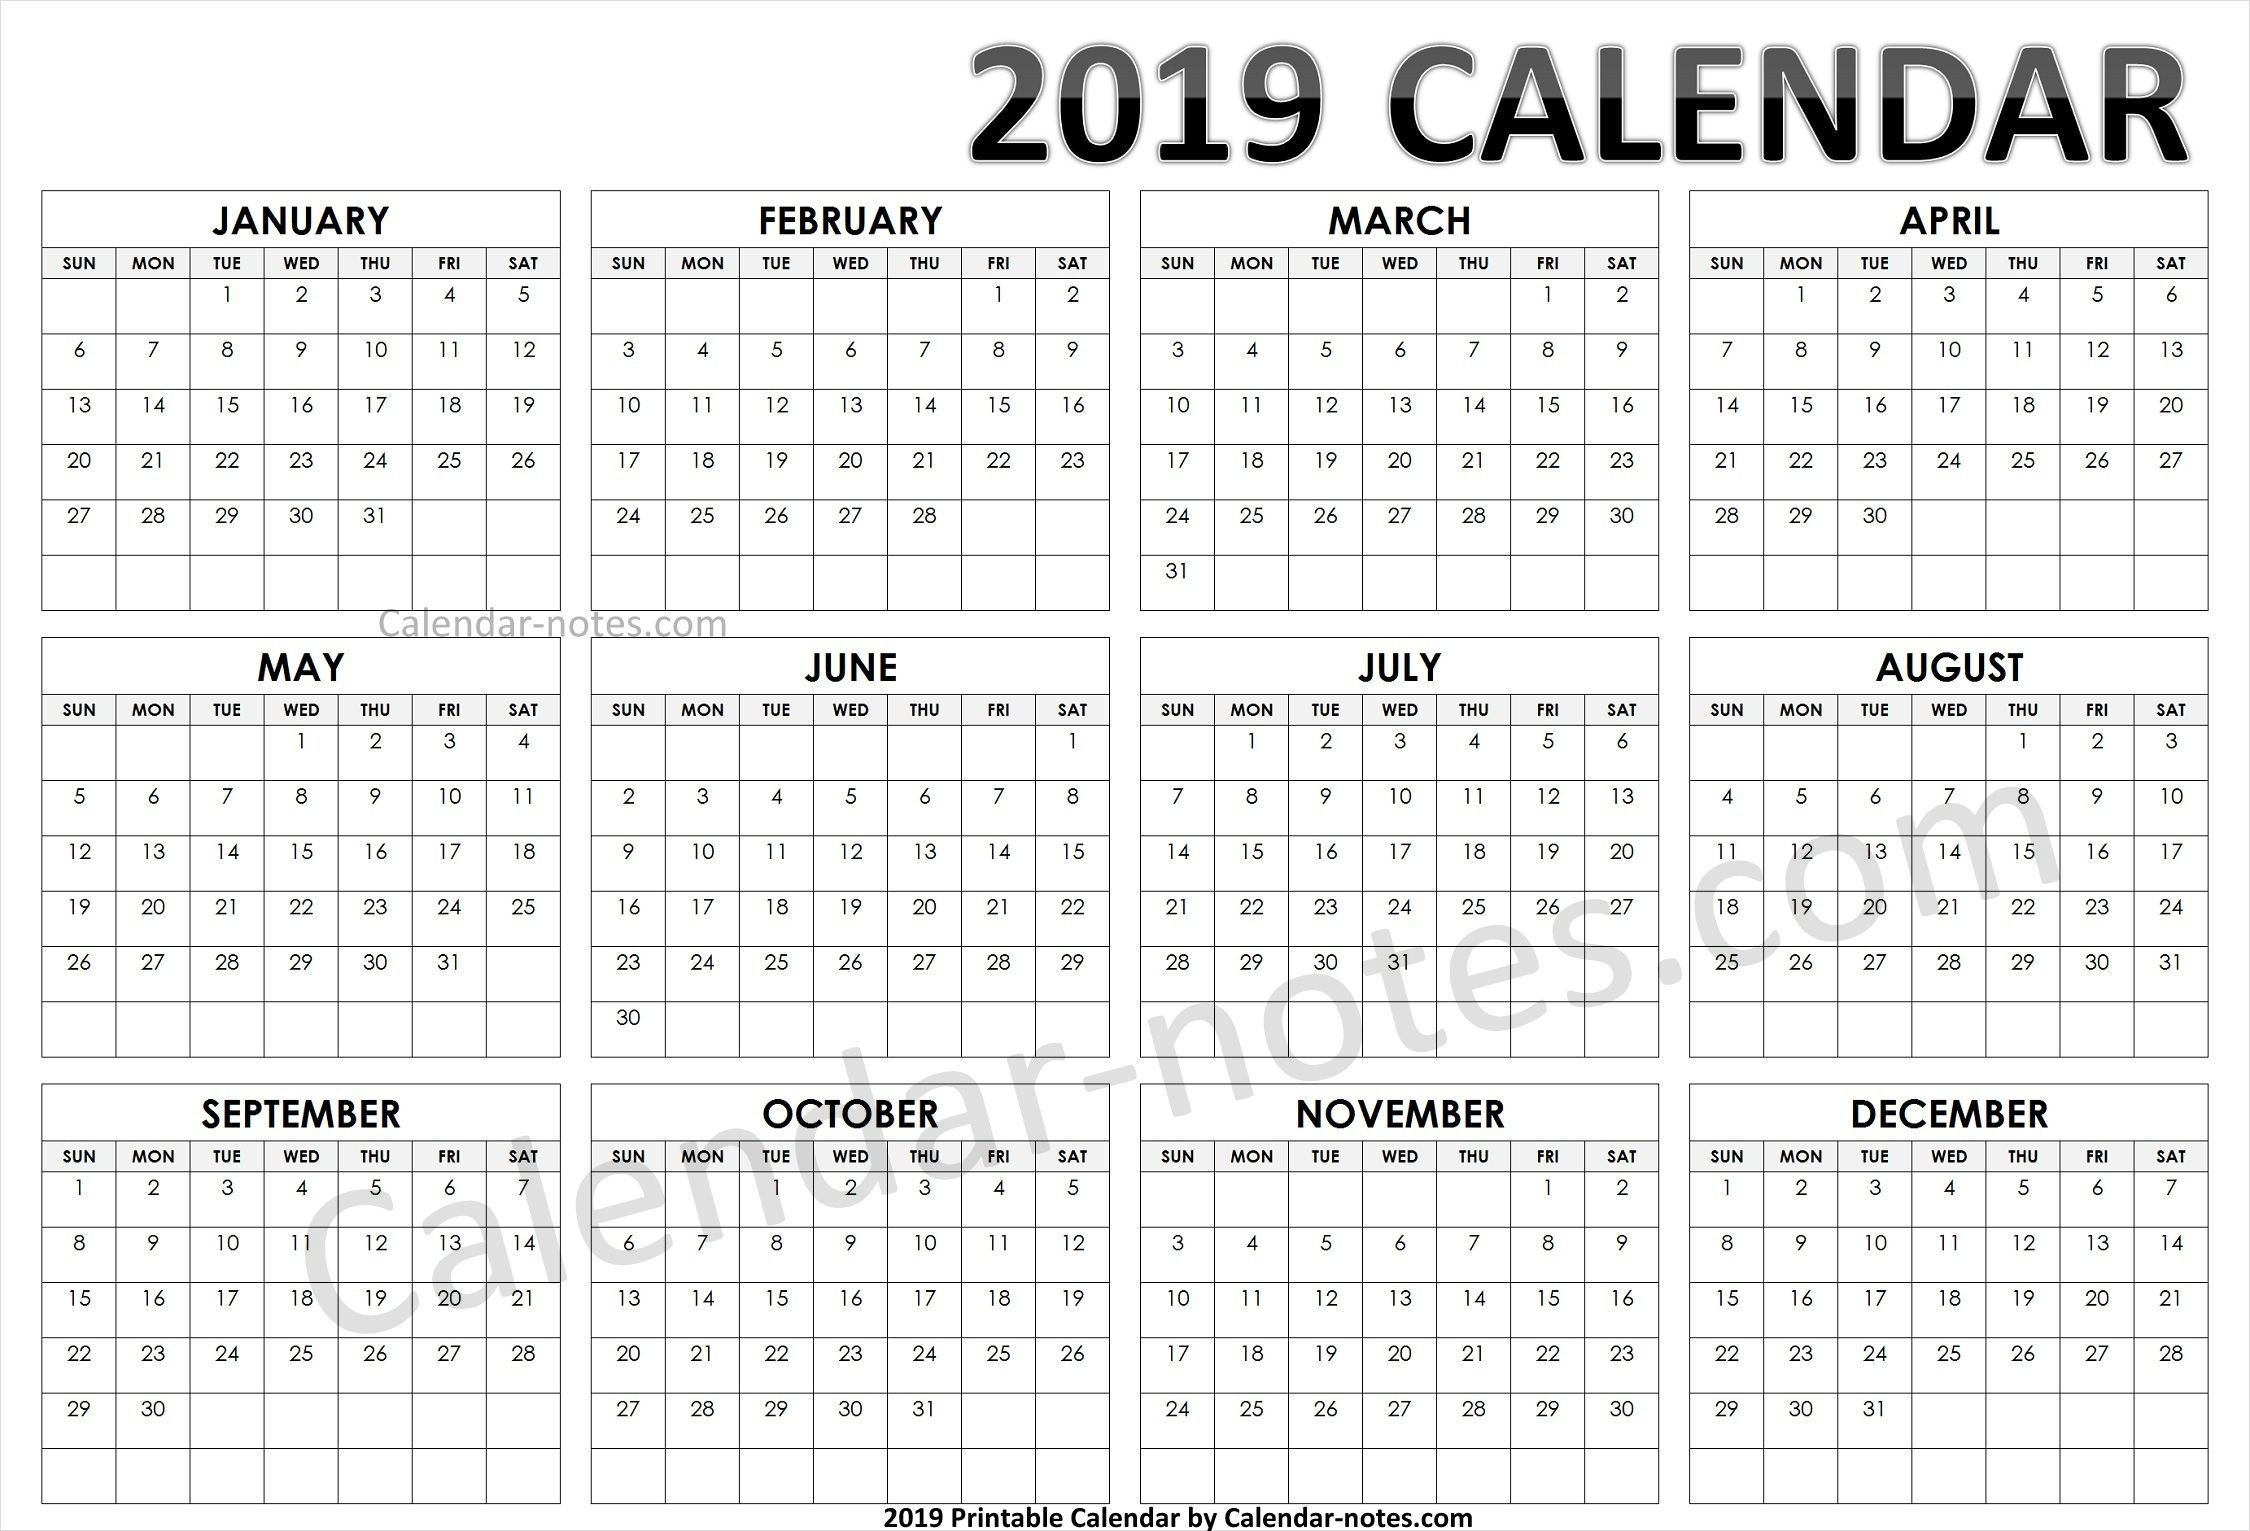 Calendar 2019 English And Arabic Calendar Download Calendar